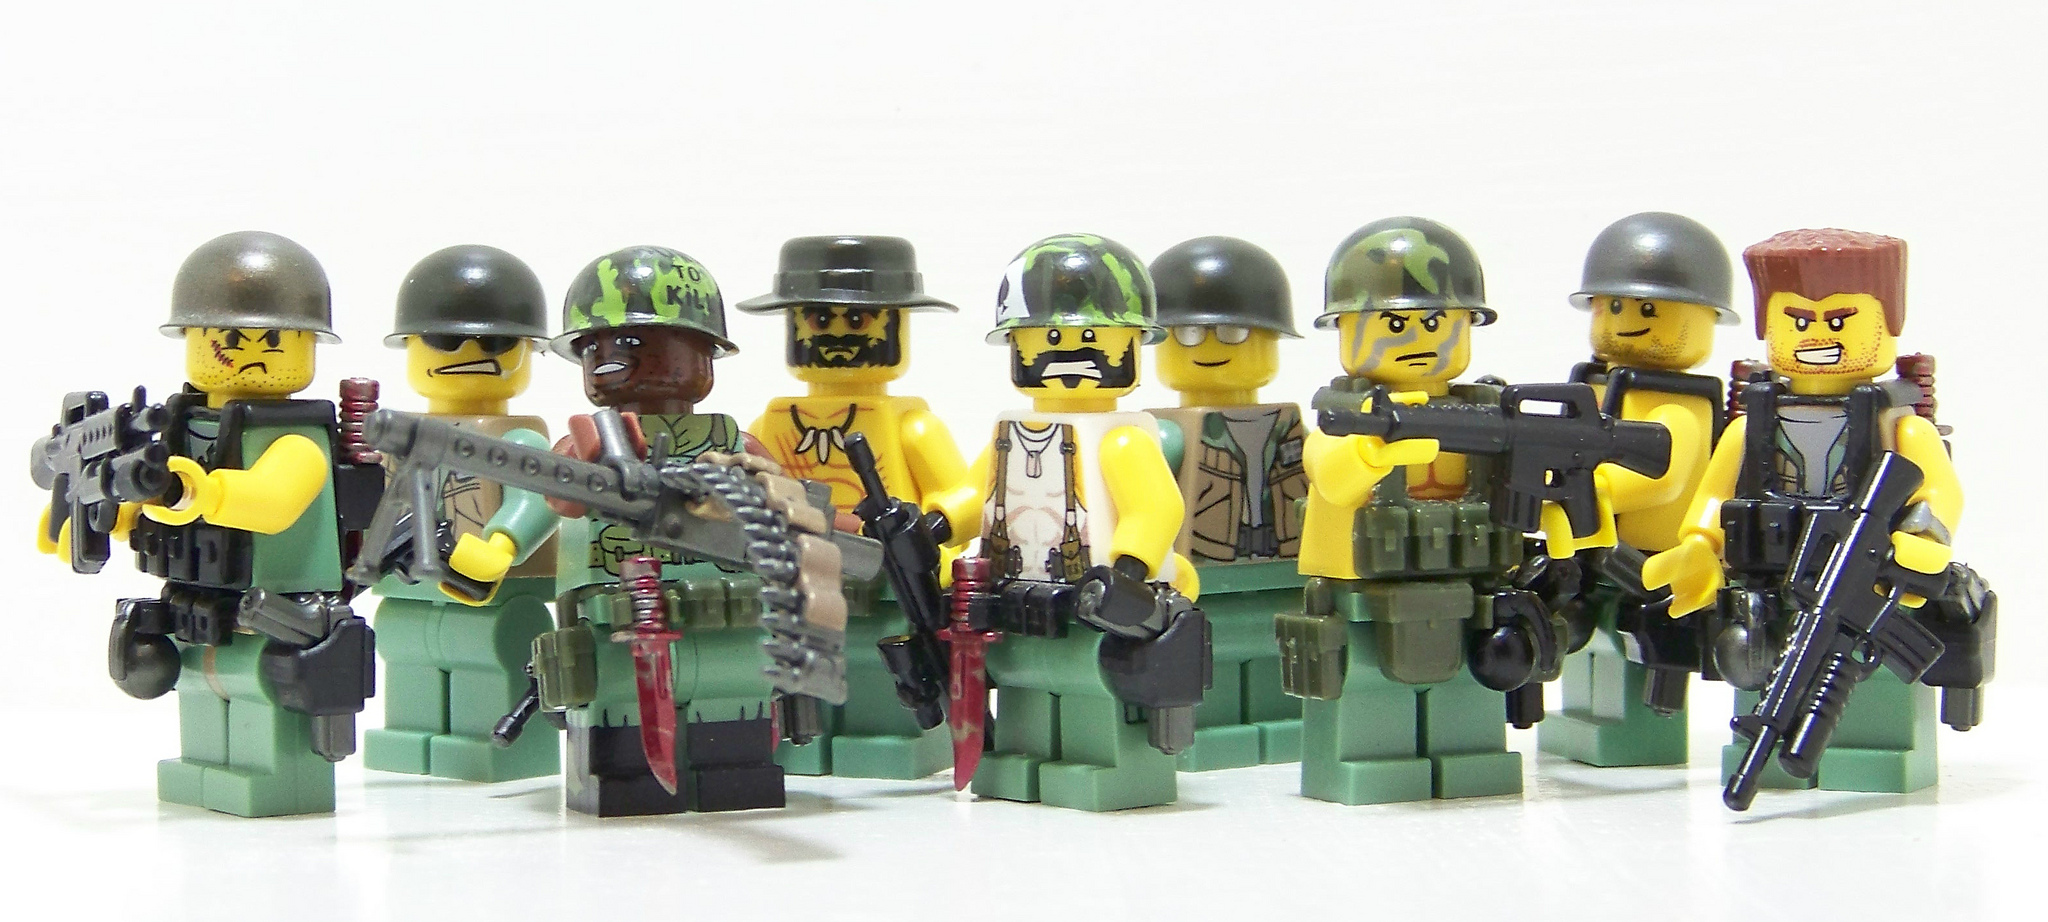 lego army helicopter sets with Veitnom Lego Kkmacharlzz7itvoshrkdnrxpp3o Pn 7c0cuw3bub7nm on Bateau De Police Lego also 1735413 32569111711 together with Watch also Watch furthermore Lego Tank.